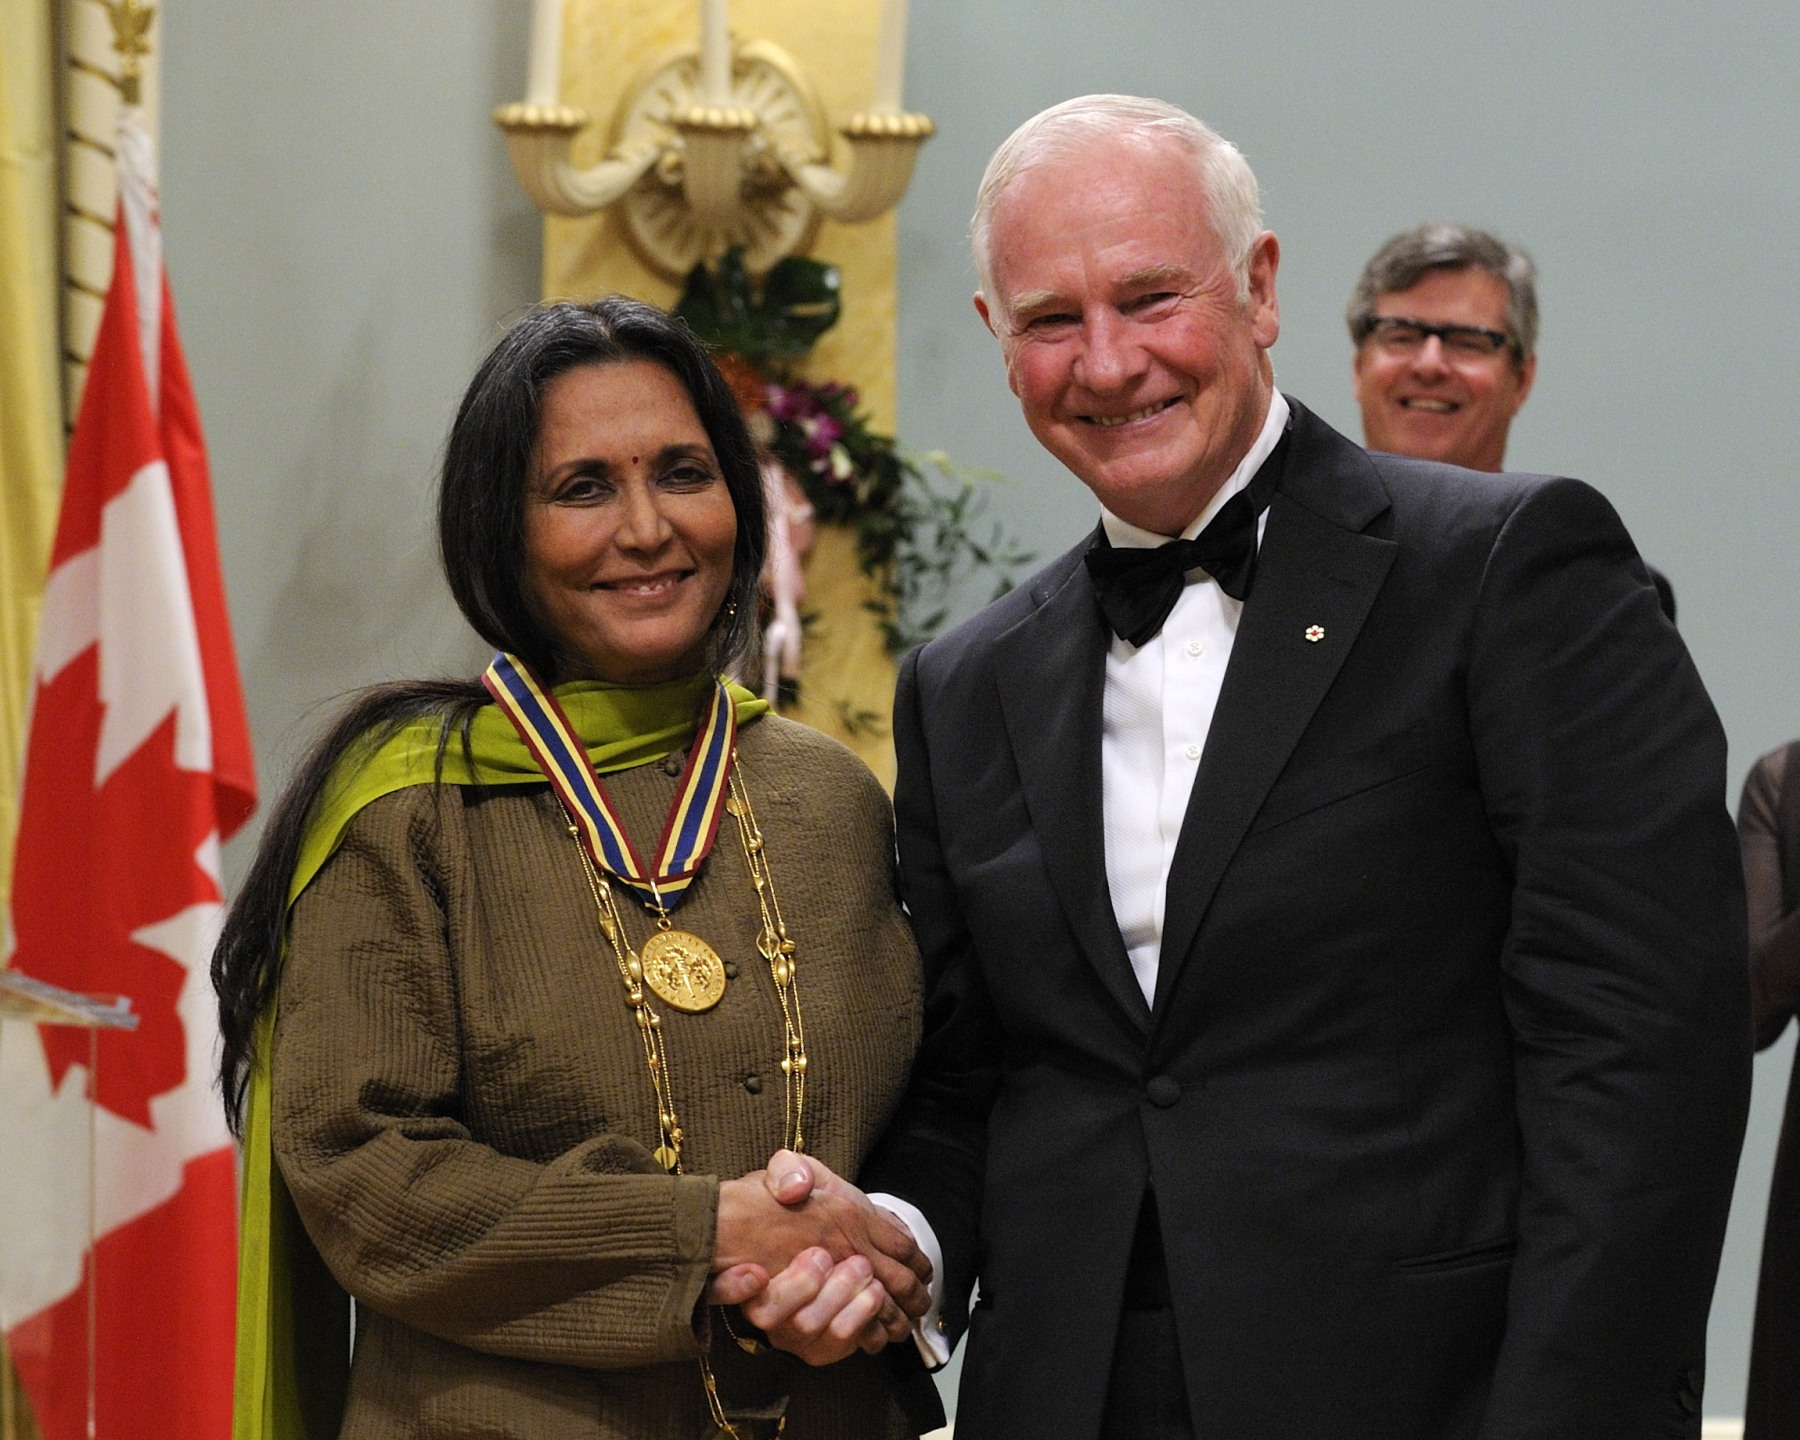 Ms. Deepa Mehta, film director and screenwriter, received the Lifetime Artistic Achievement Award.